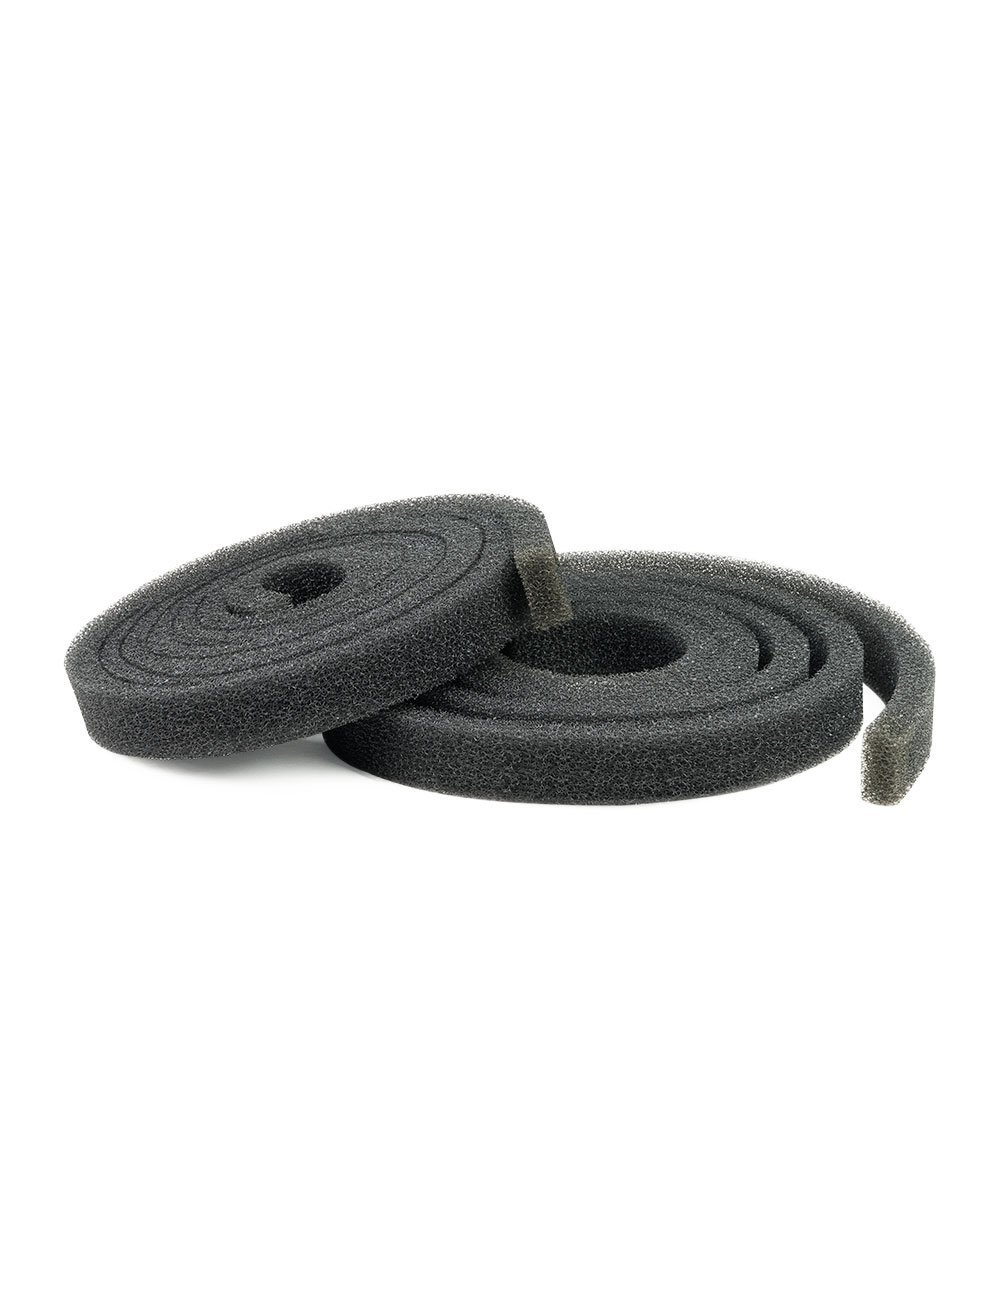 Box of 6 10 ft Reticulated Filter Foam Stripping 20PPI Rolls 1//2 Thick x 1 Wide